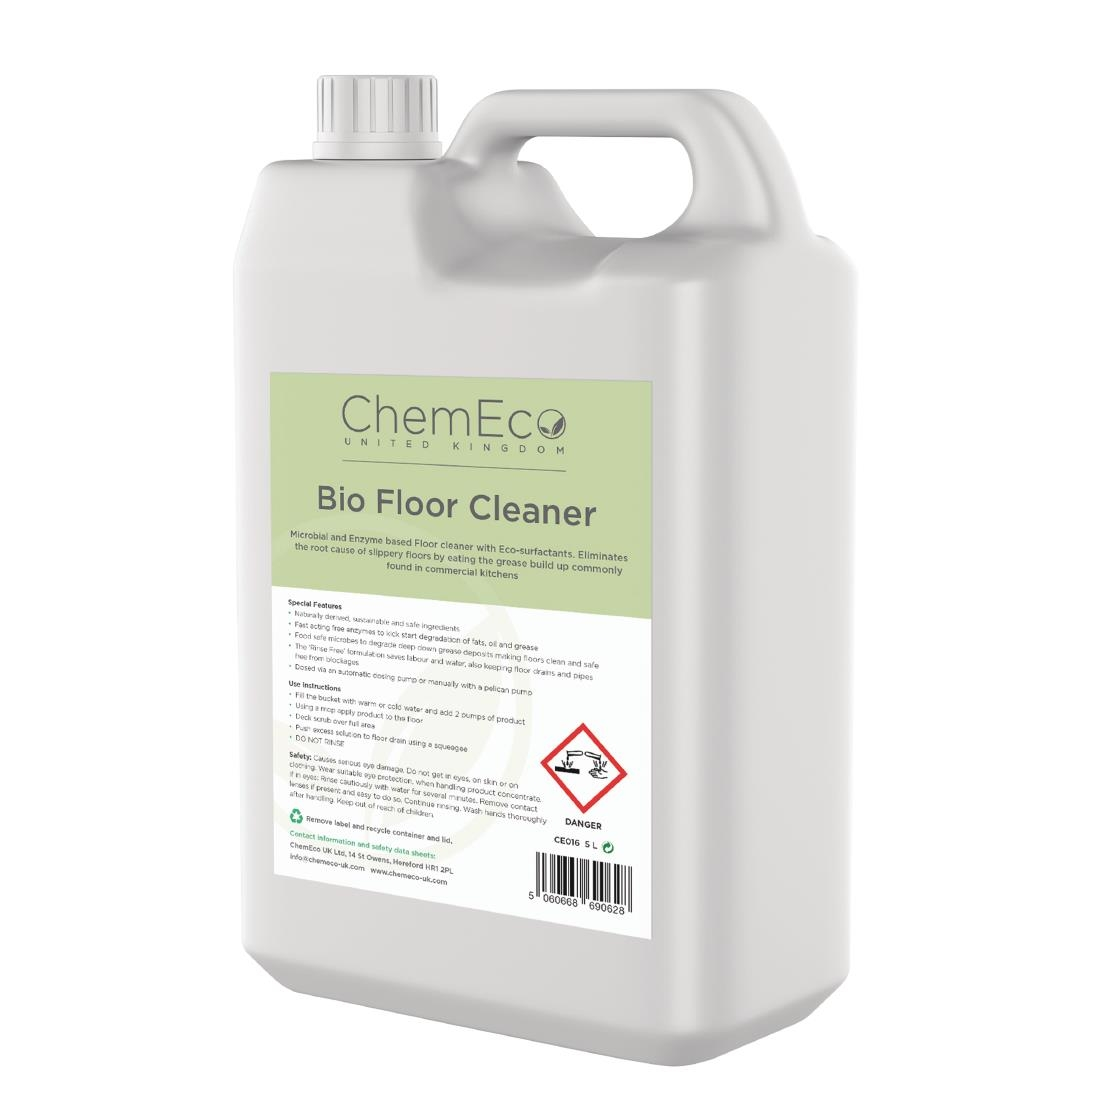 Image of ChemEco Bio Floor Cleaner 5Ltr (Pack of 2)